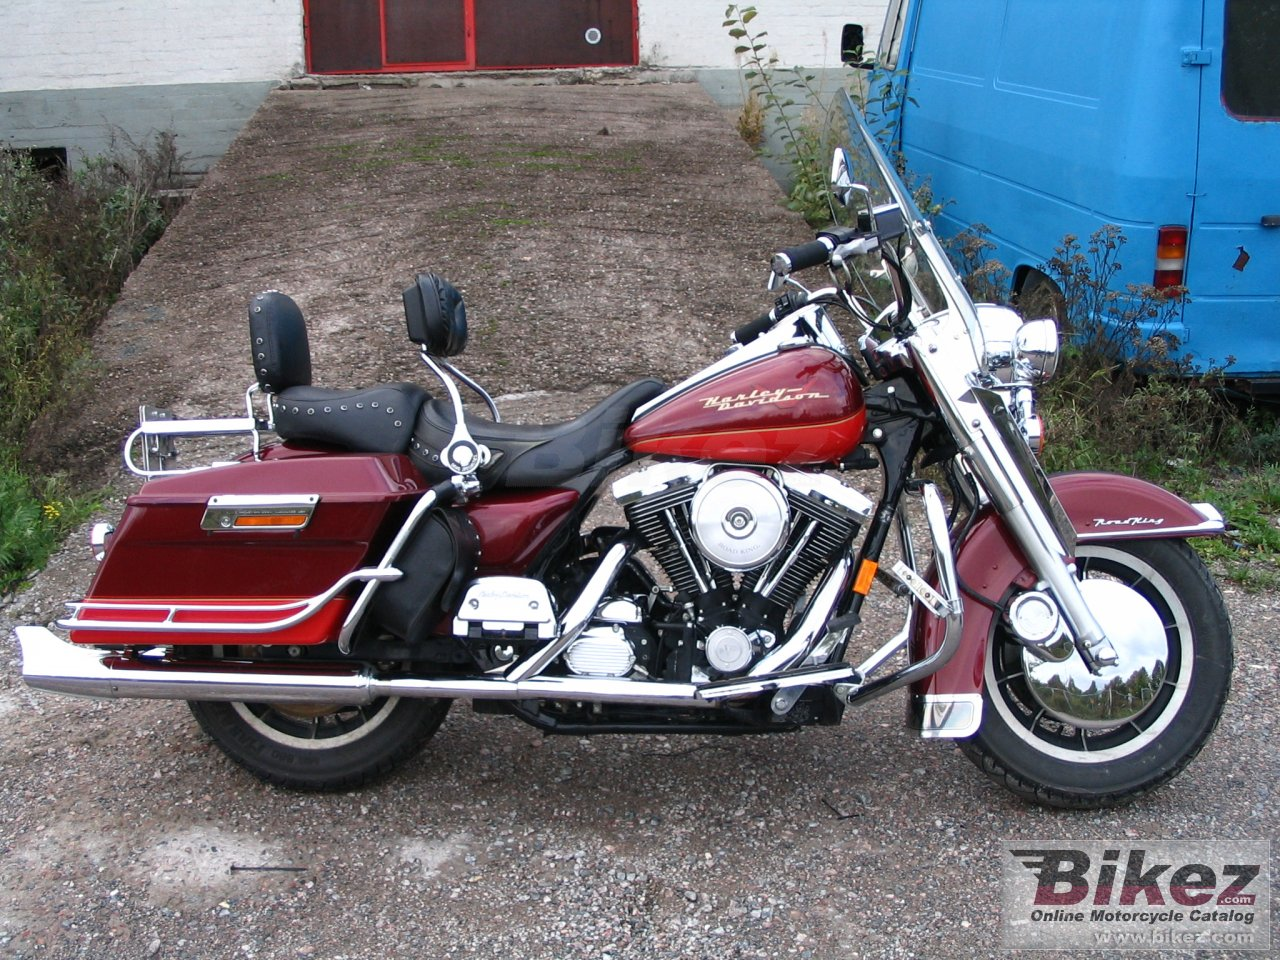 Big nymous user. 1340 electra glide road king picture and wallpaper from Bikez.com